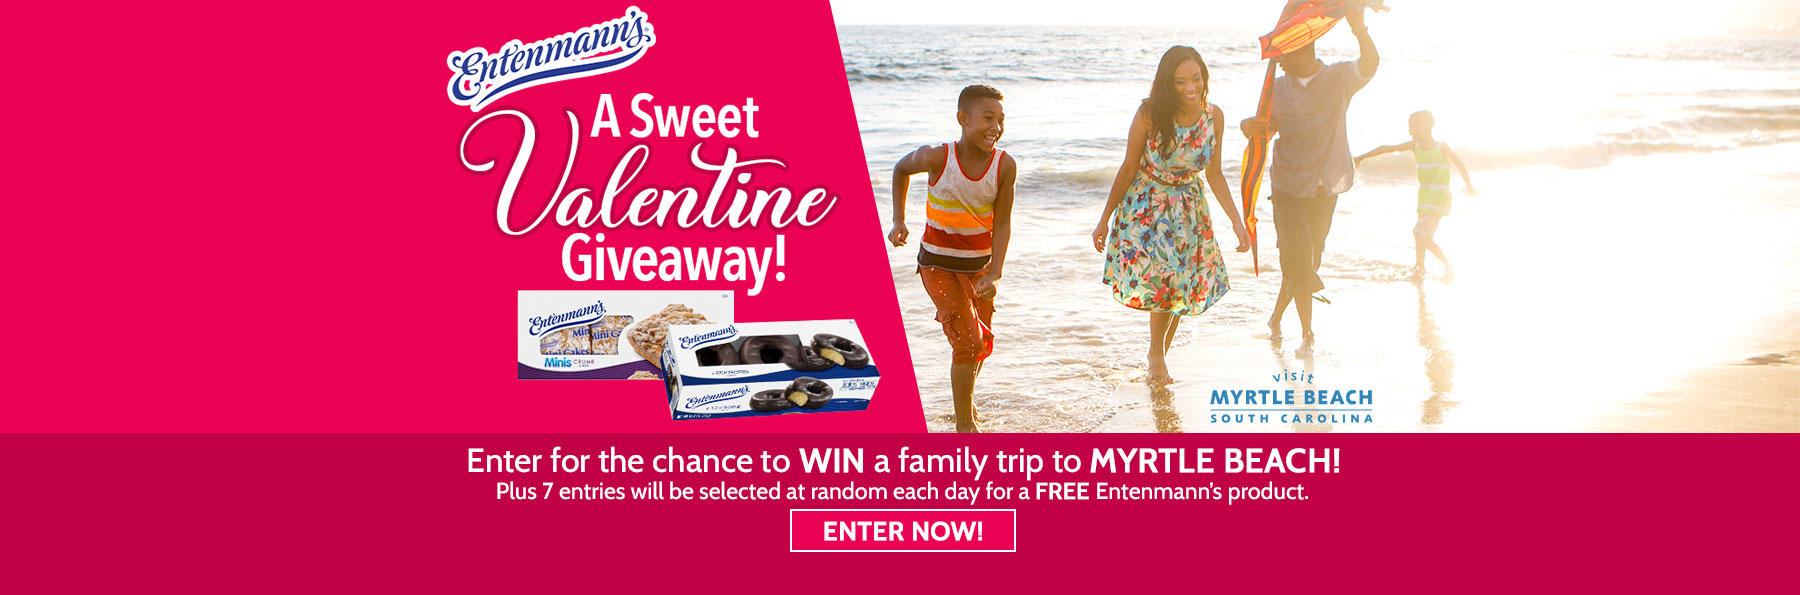 Entenmann's A Sweet Valentine Giveaway! Enter for the chance to WIN a family trip to MYRTLE BEACH! Plus7 entries will be selected at random each day for a FREE Entenmann's product. Enter Now!